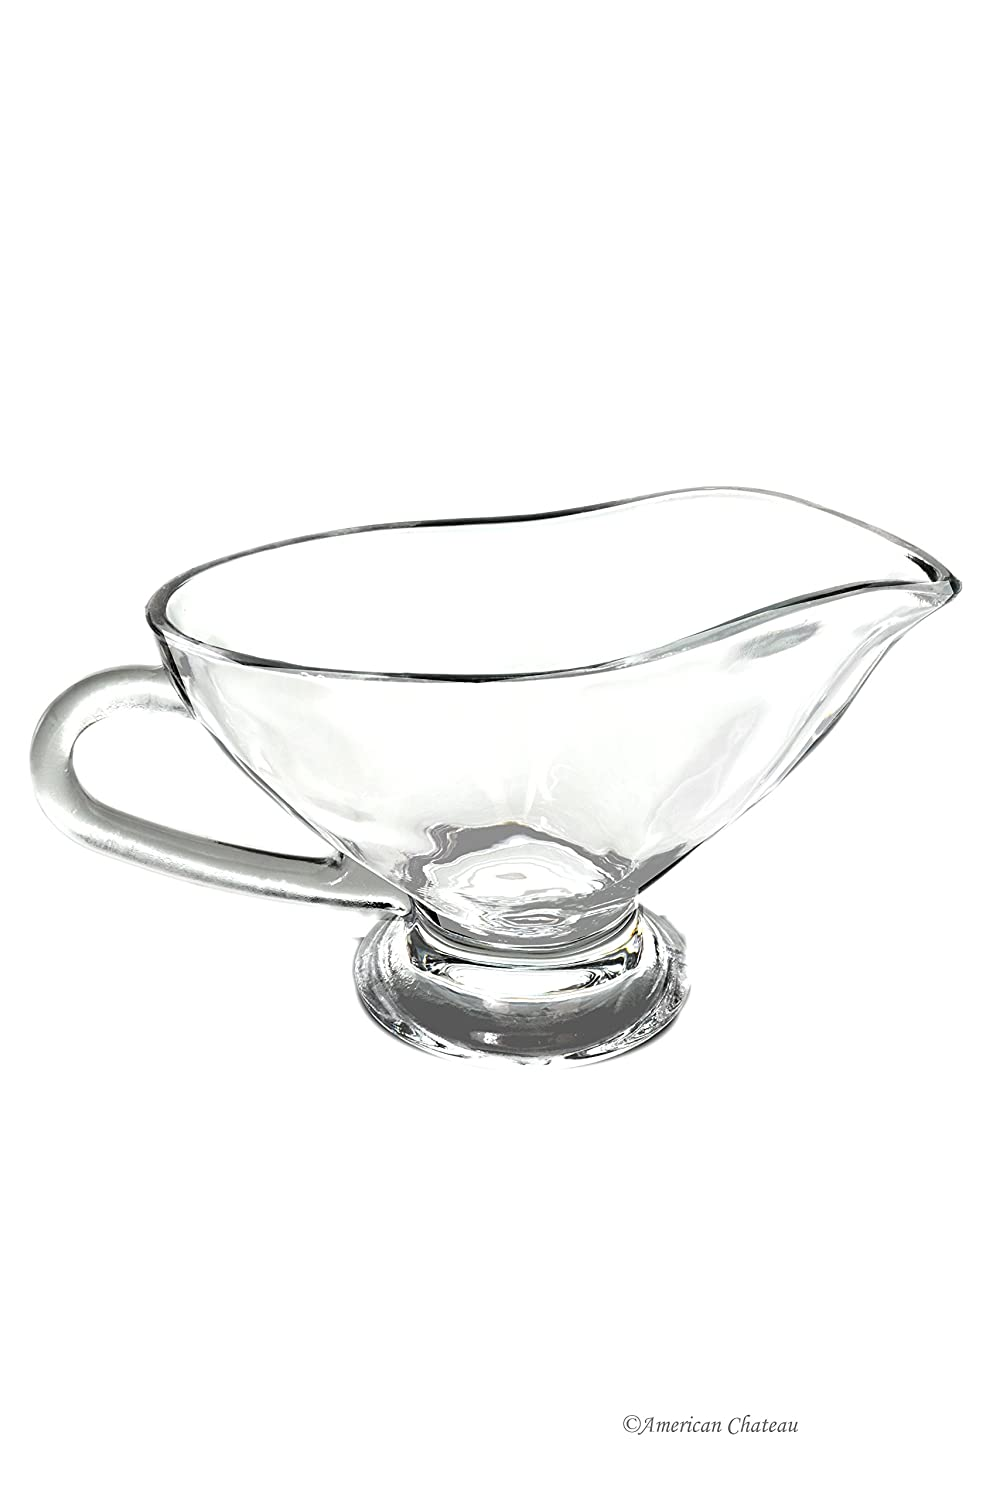 Large 10oz / 300 ml Clear Thick Glass Gravy Sauce Bowl Boat with Large Handle American Chateau